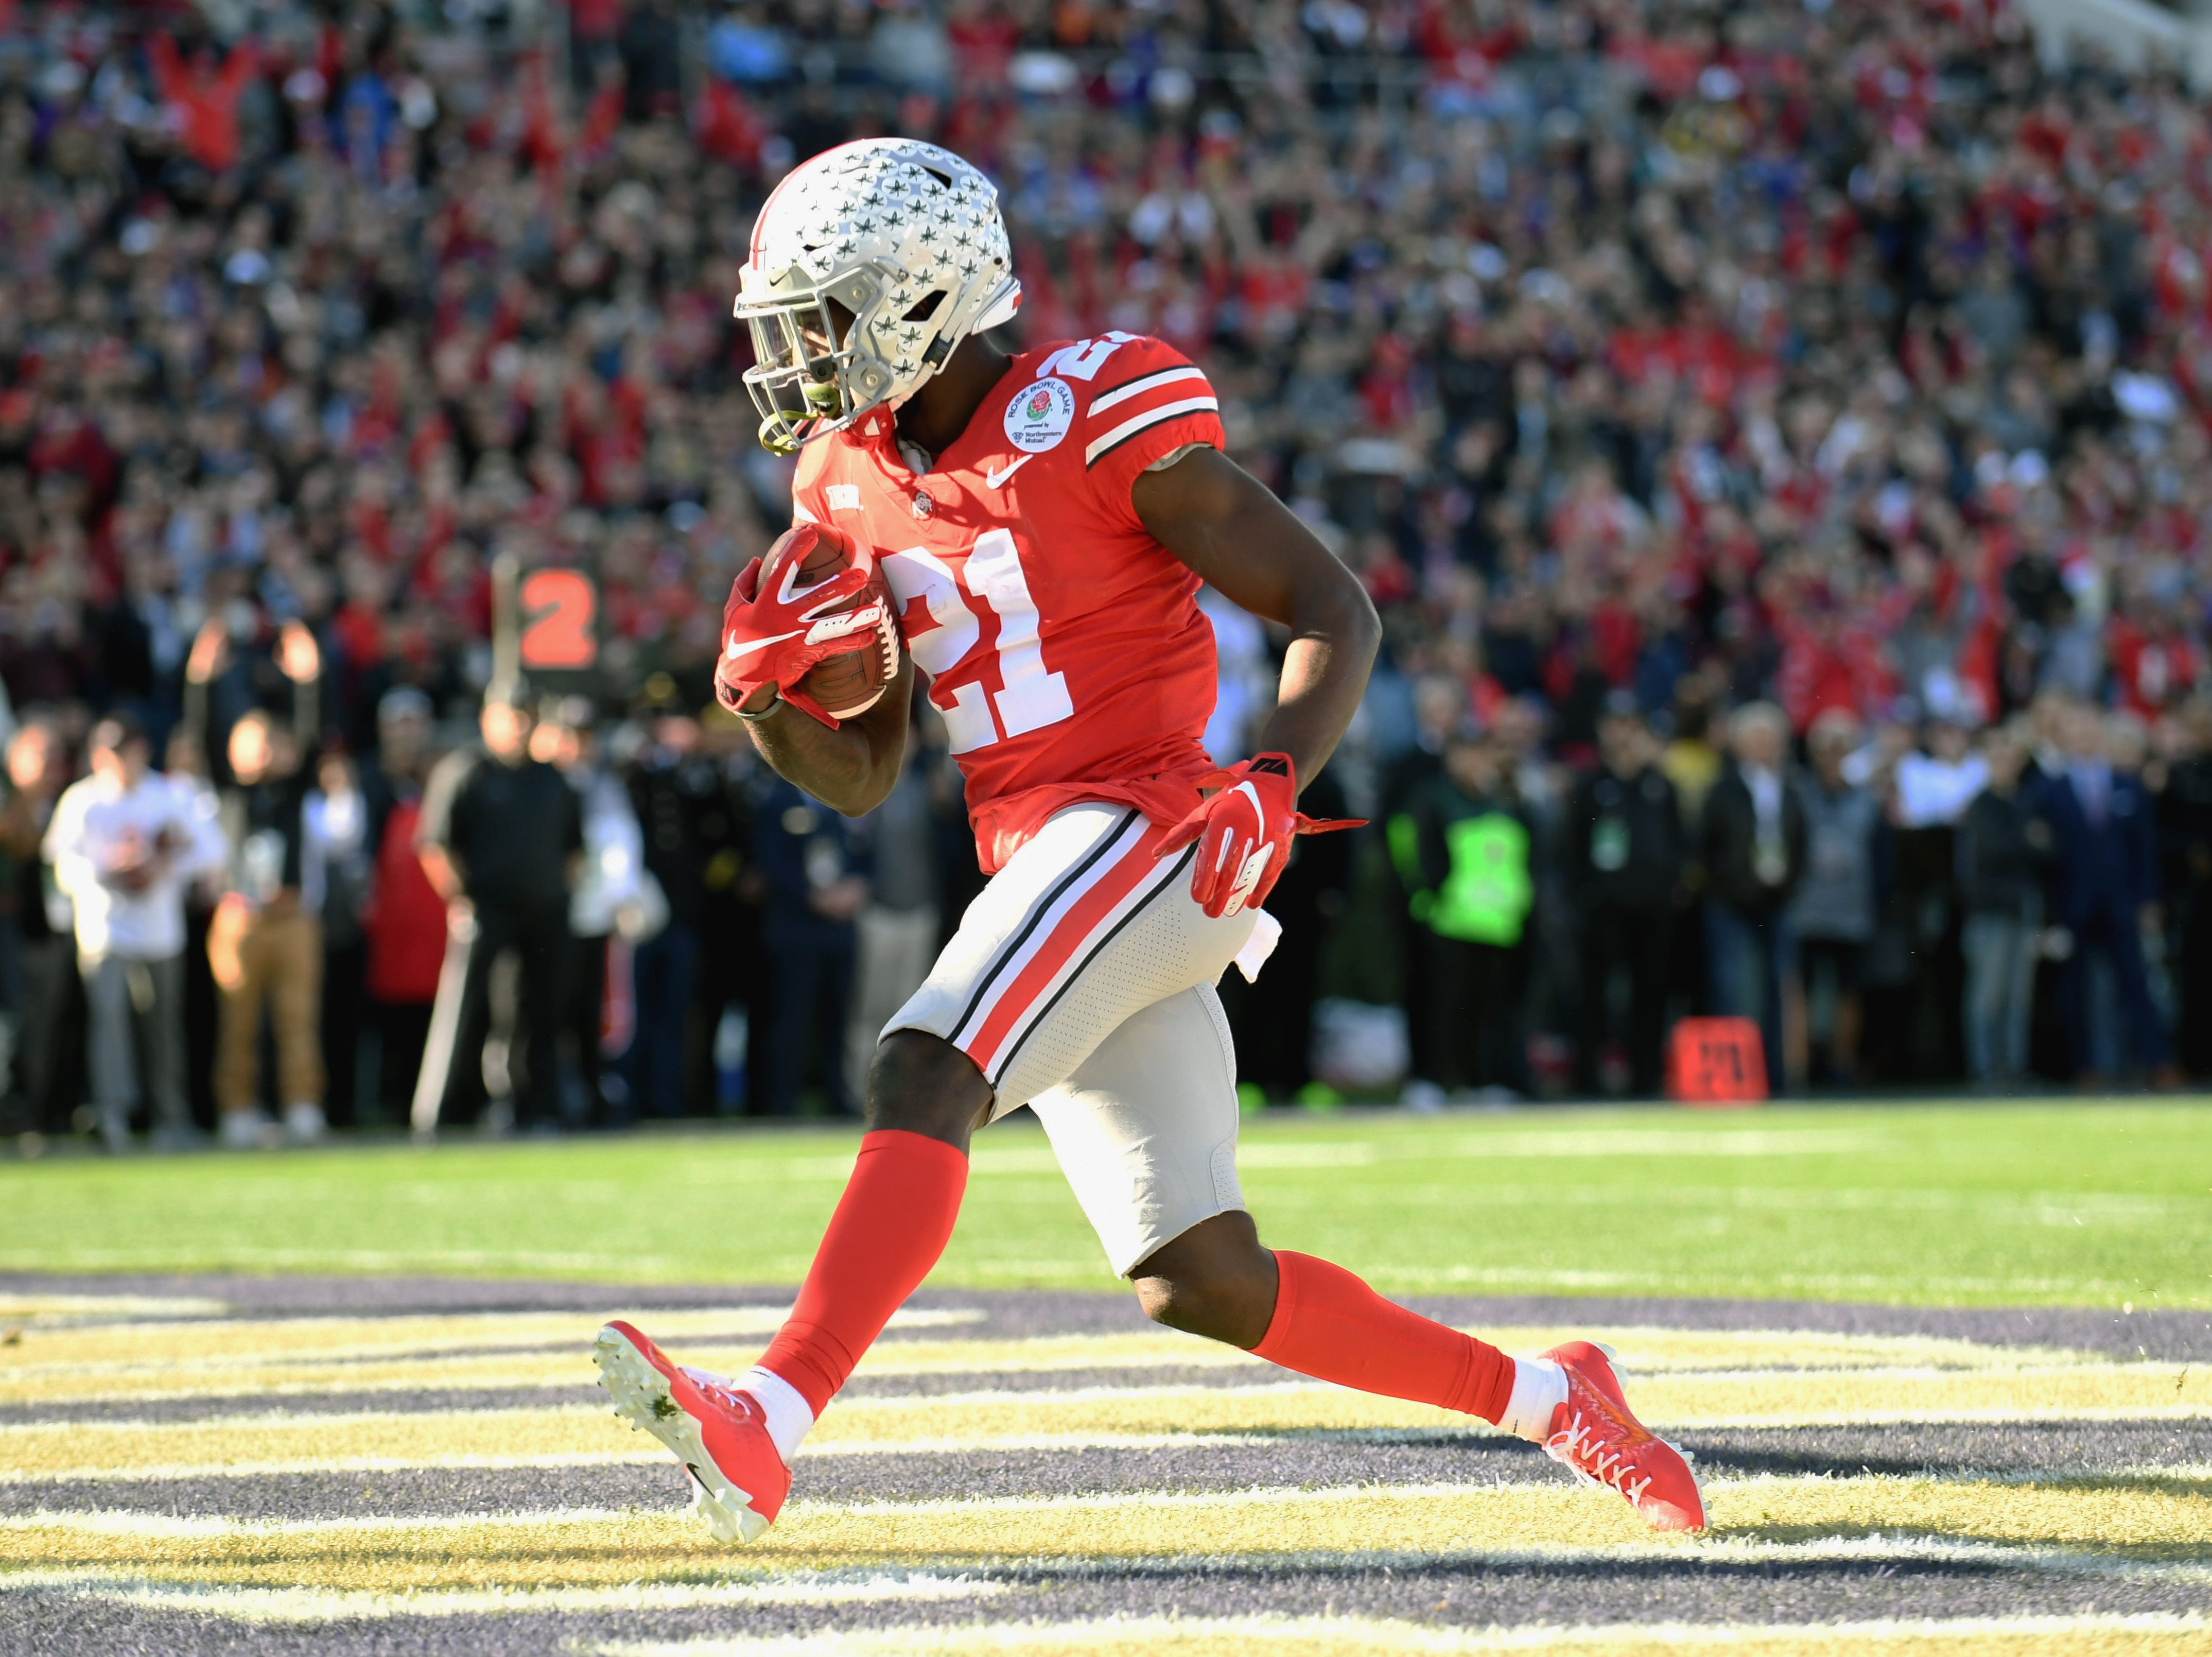 Ohio State receiver Parris Campbell makes a catch for a touchdown against Washington during the 2019 Rose Bowl.